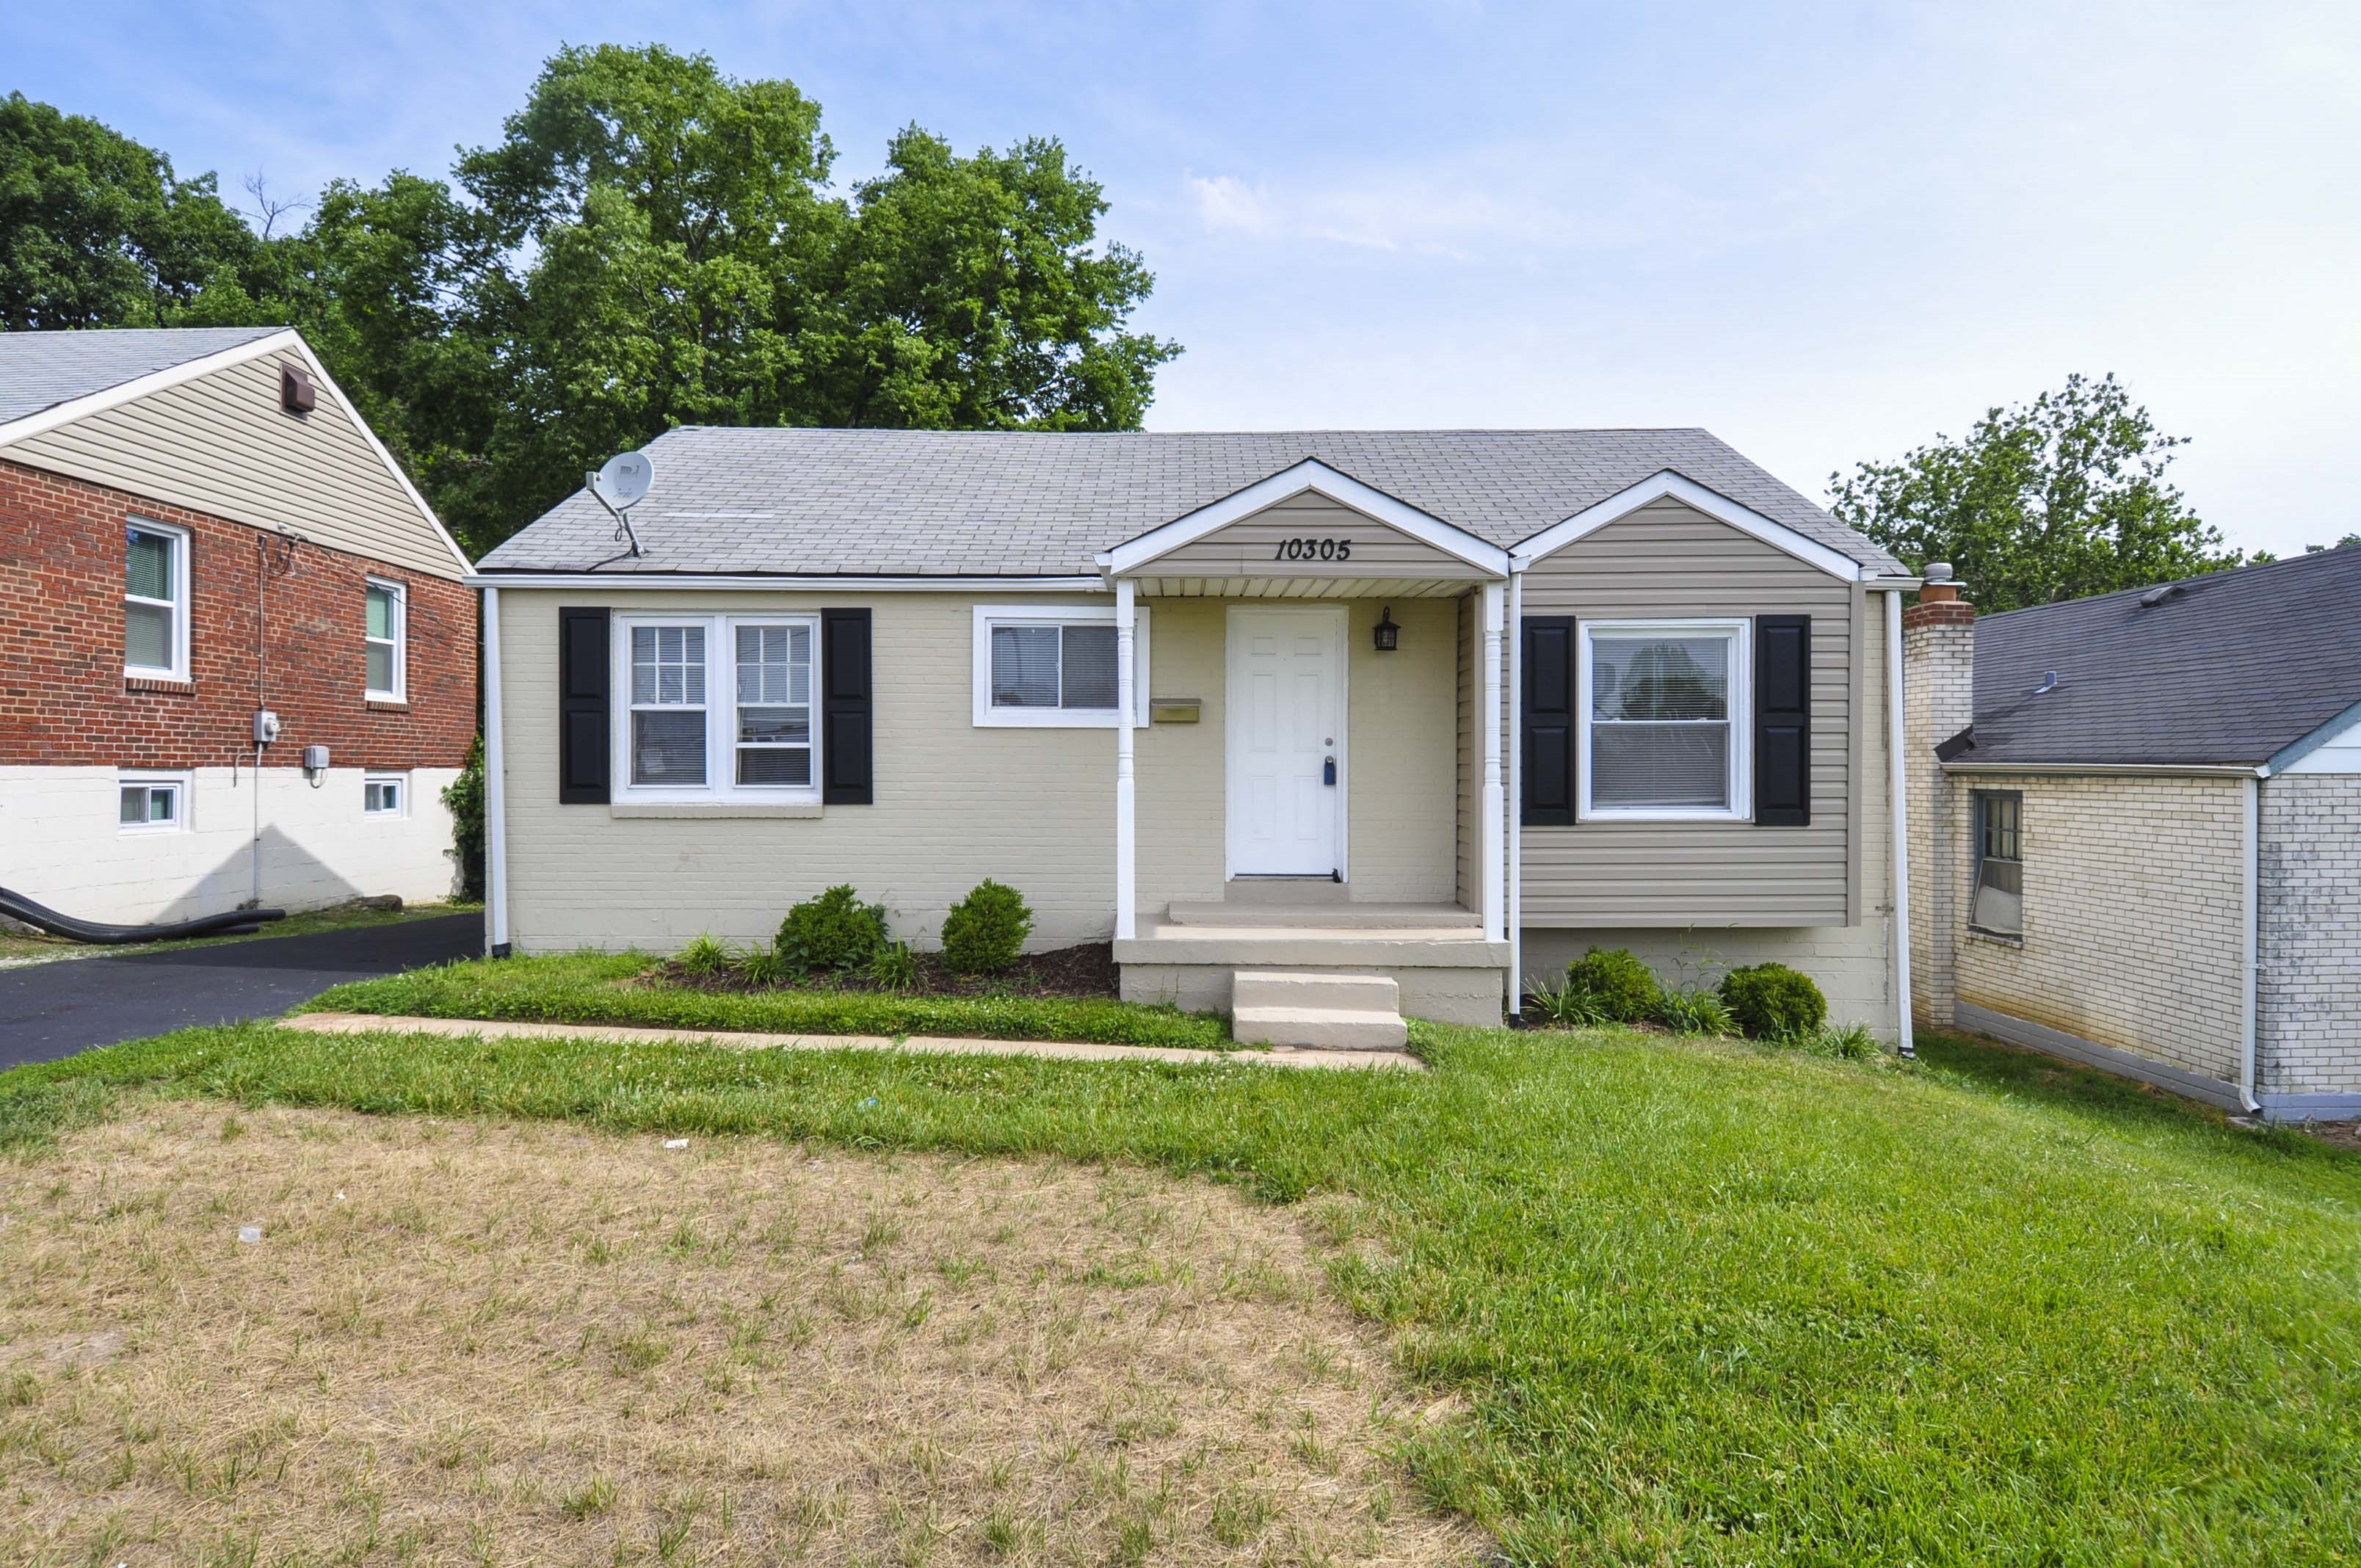 10305 Page Ave St Louis MO 63132